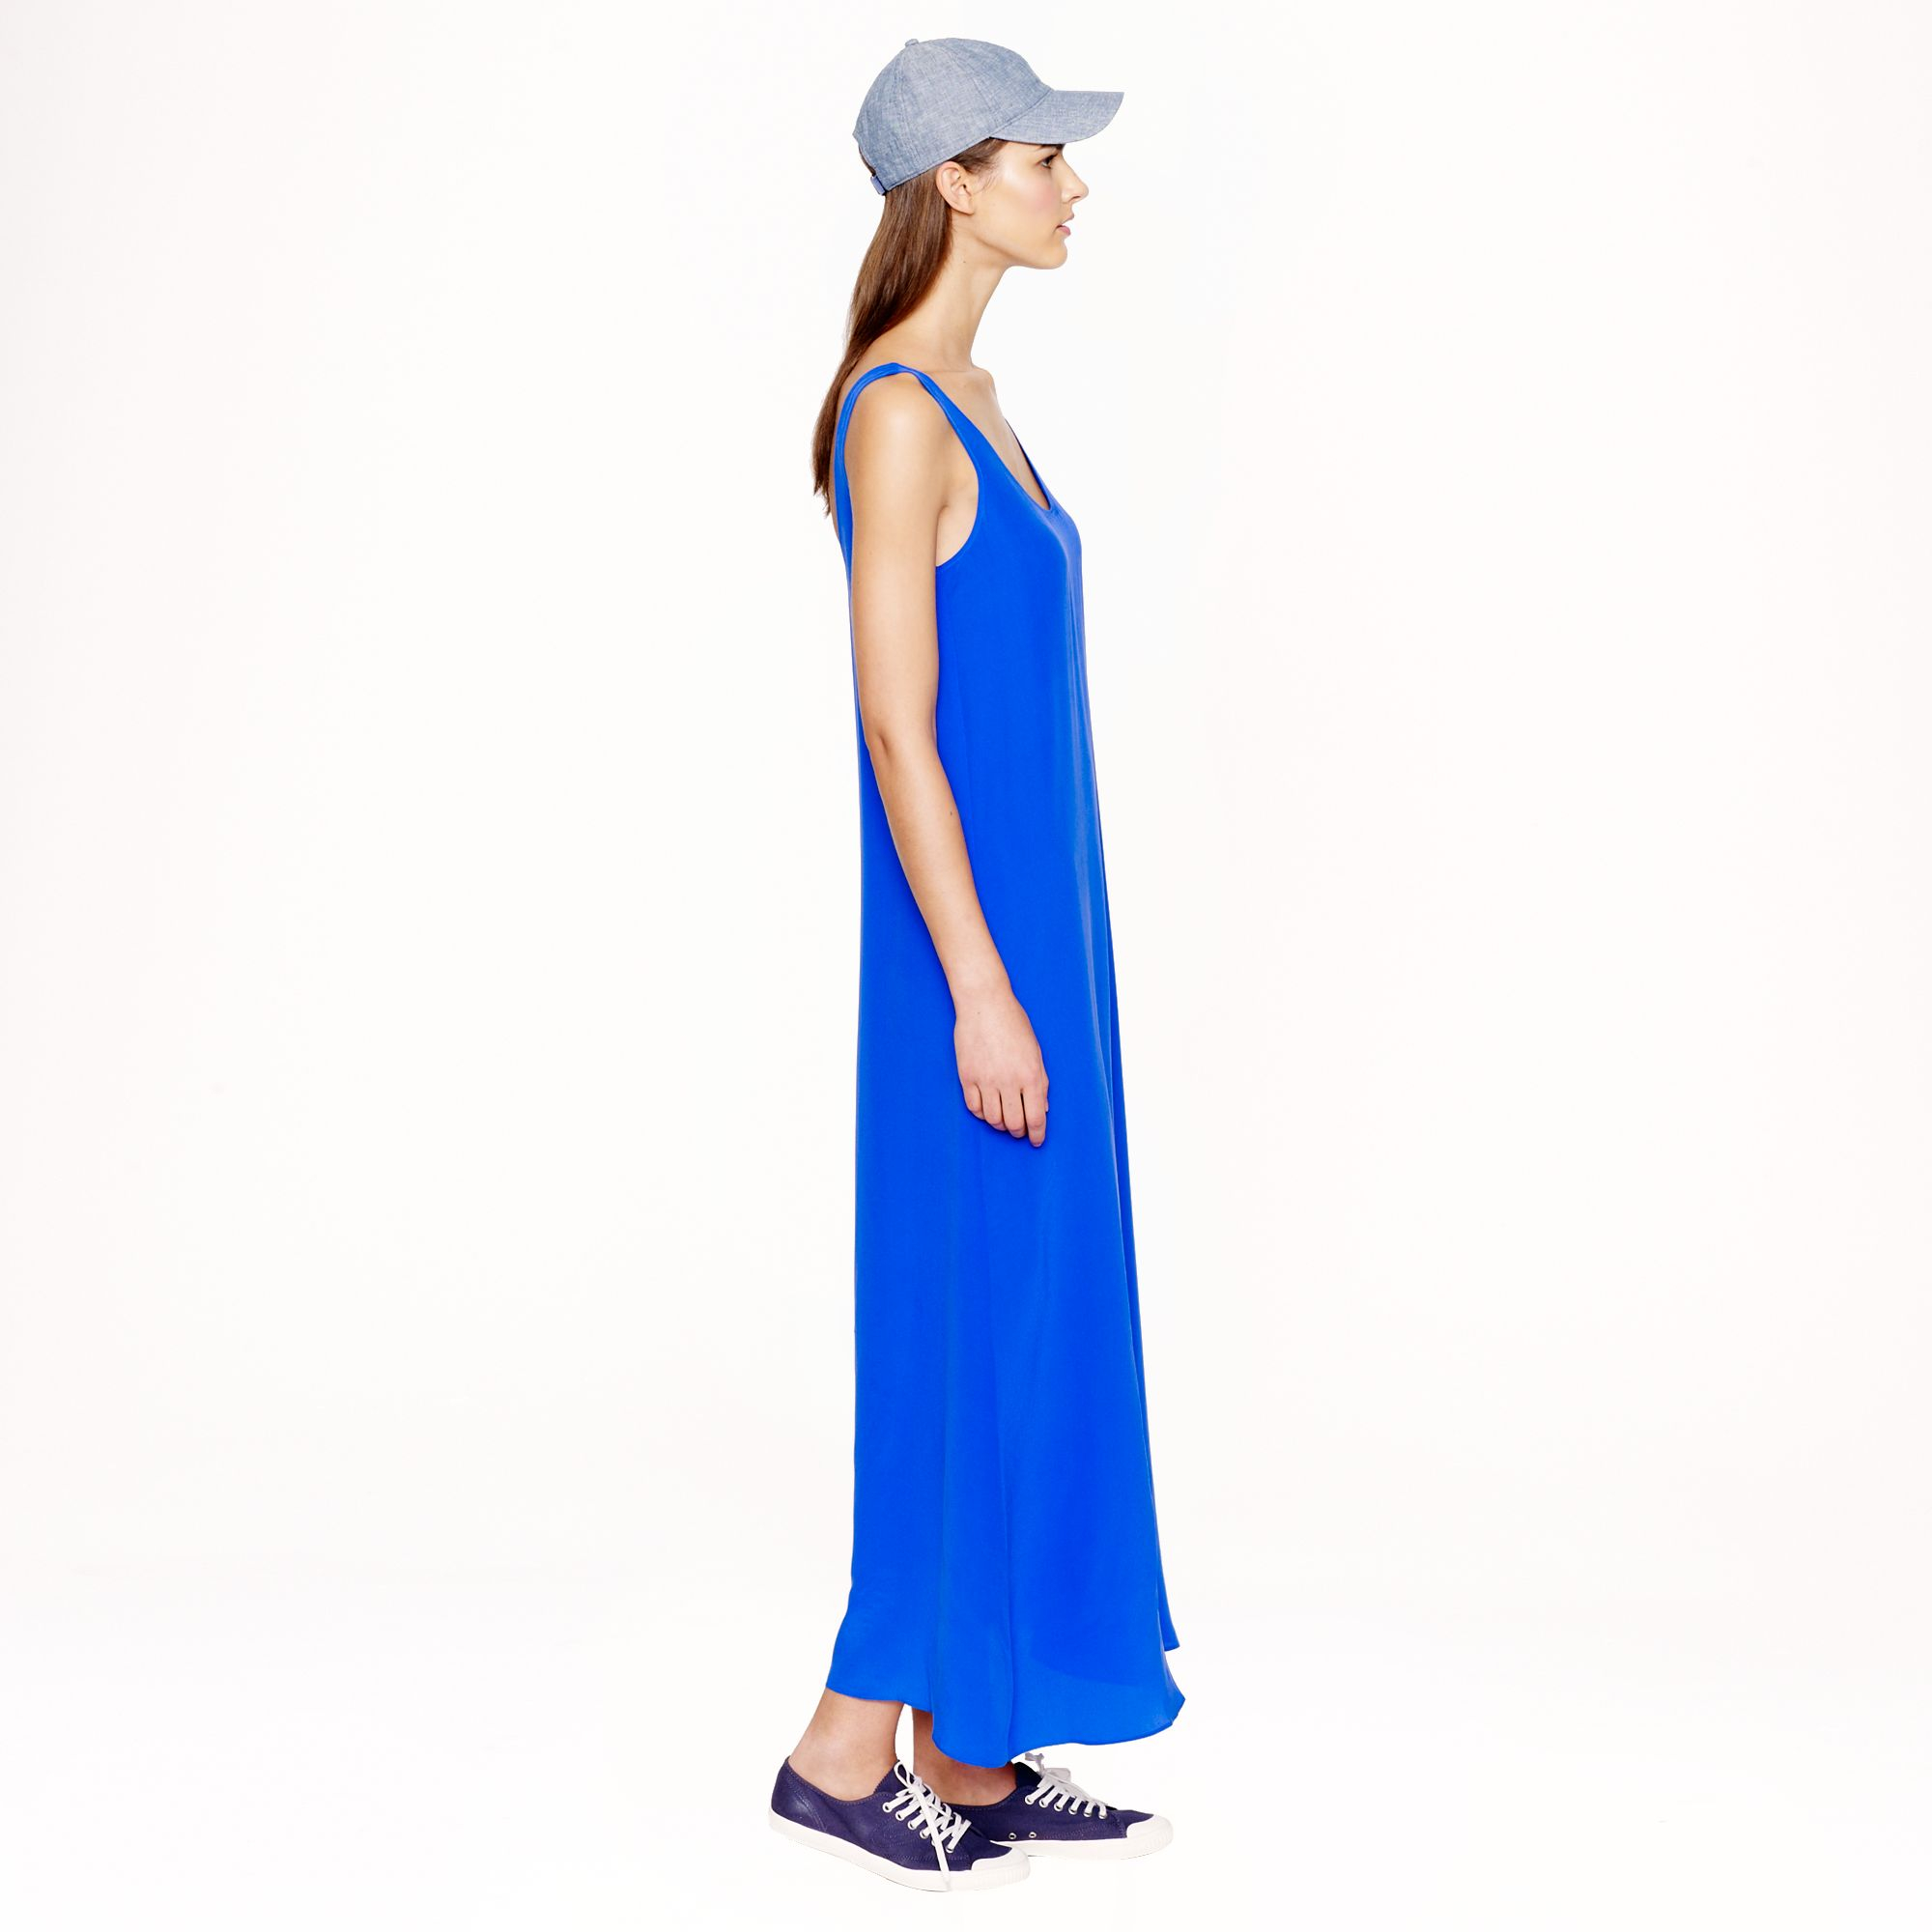 a3fbd98e8d0 J.Crew Silk Crepe Maxidress in Blue - Lyst